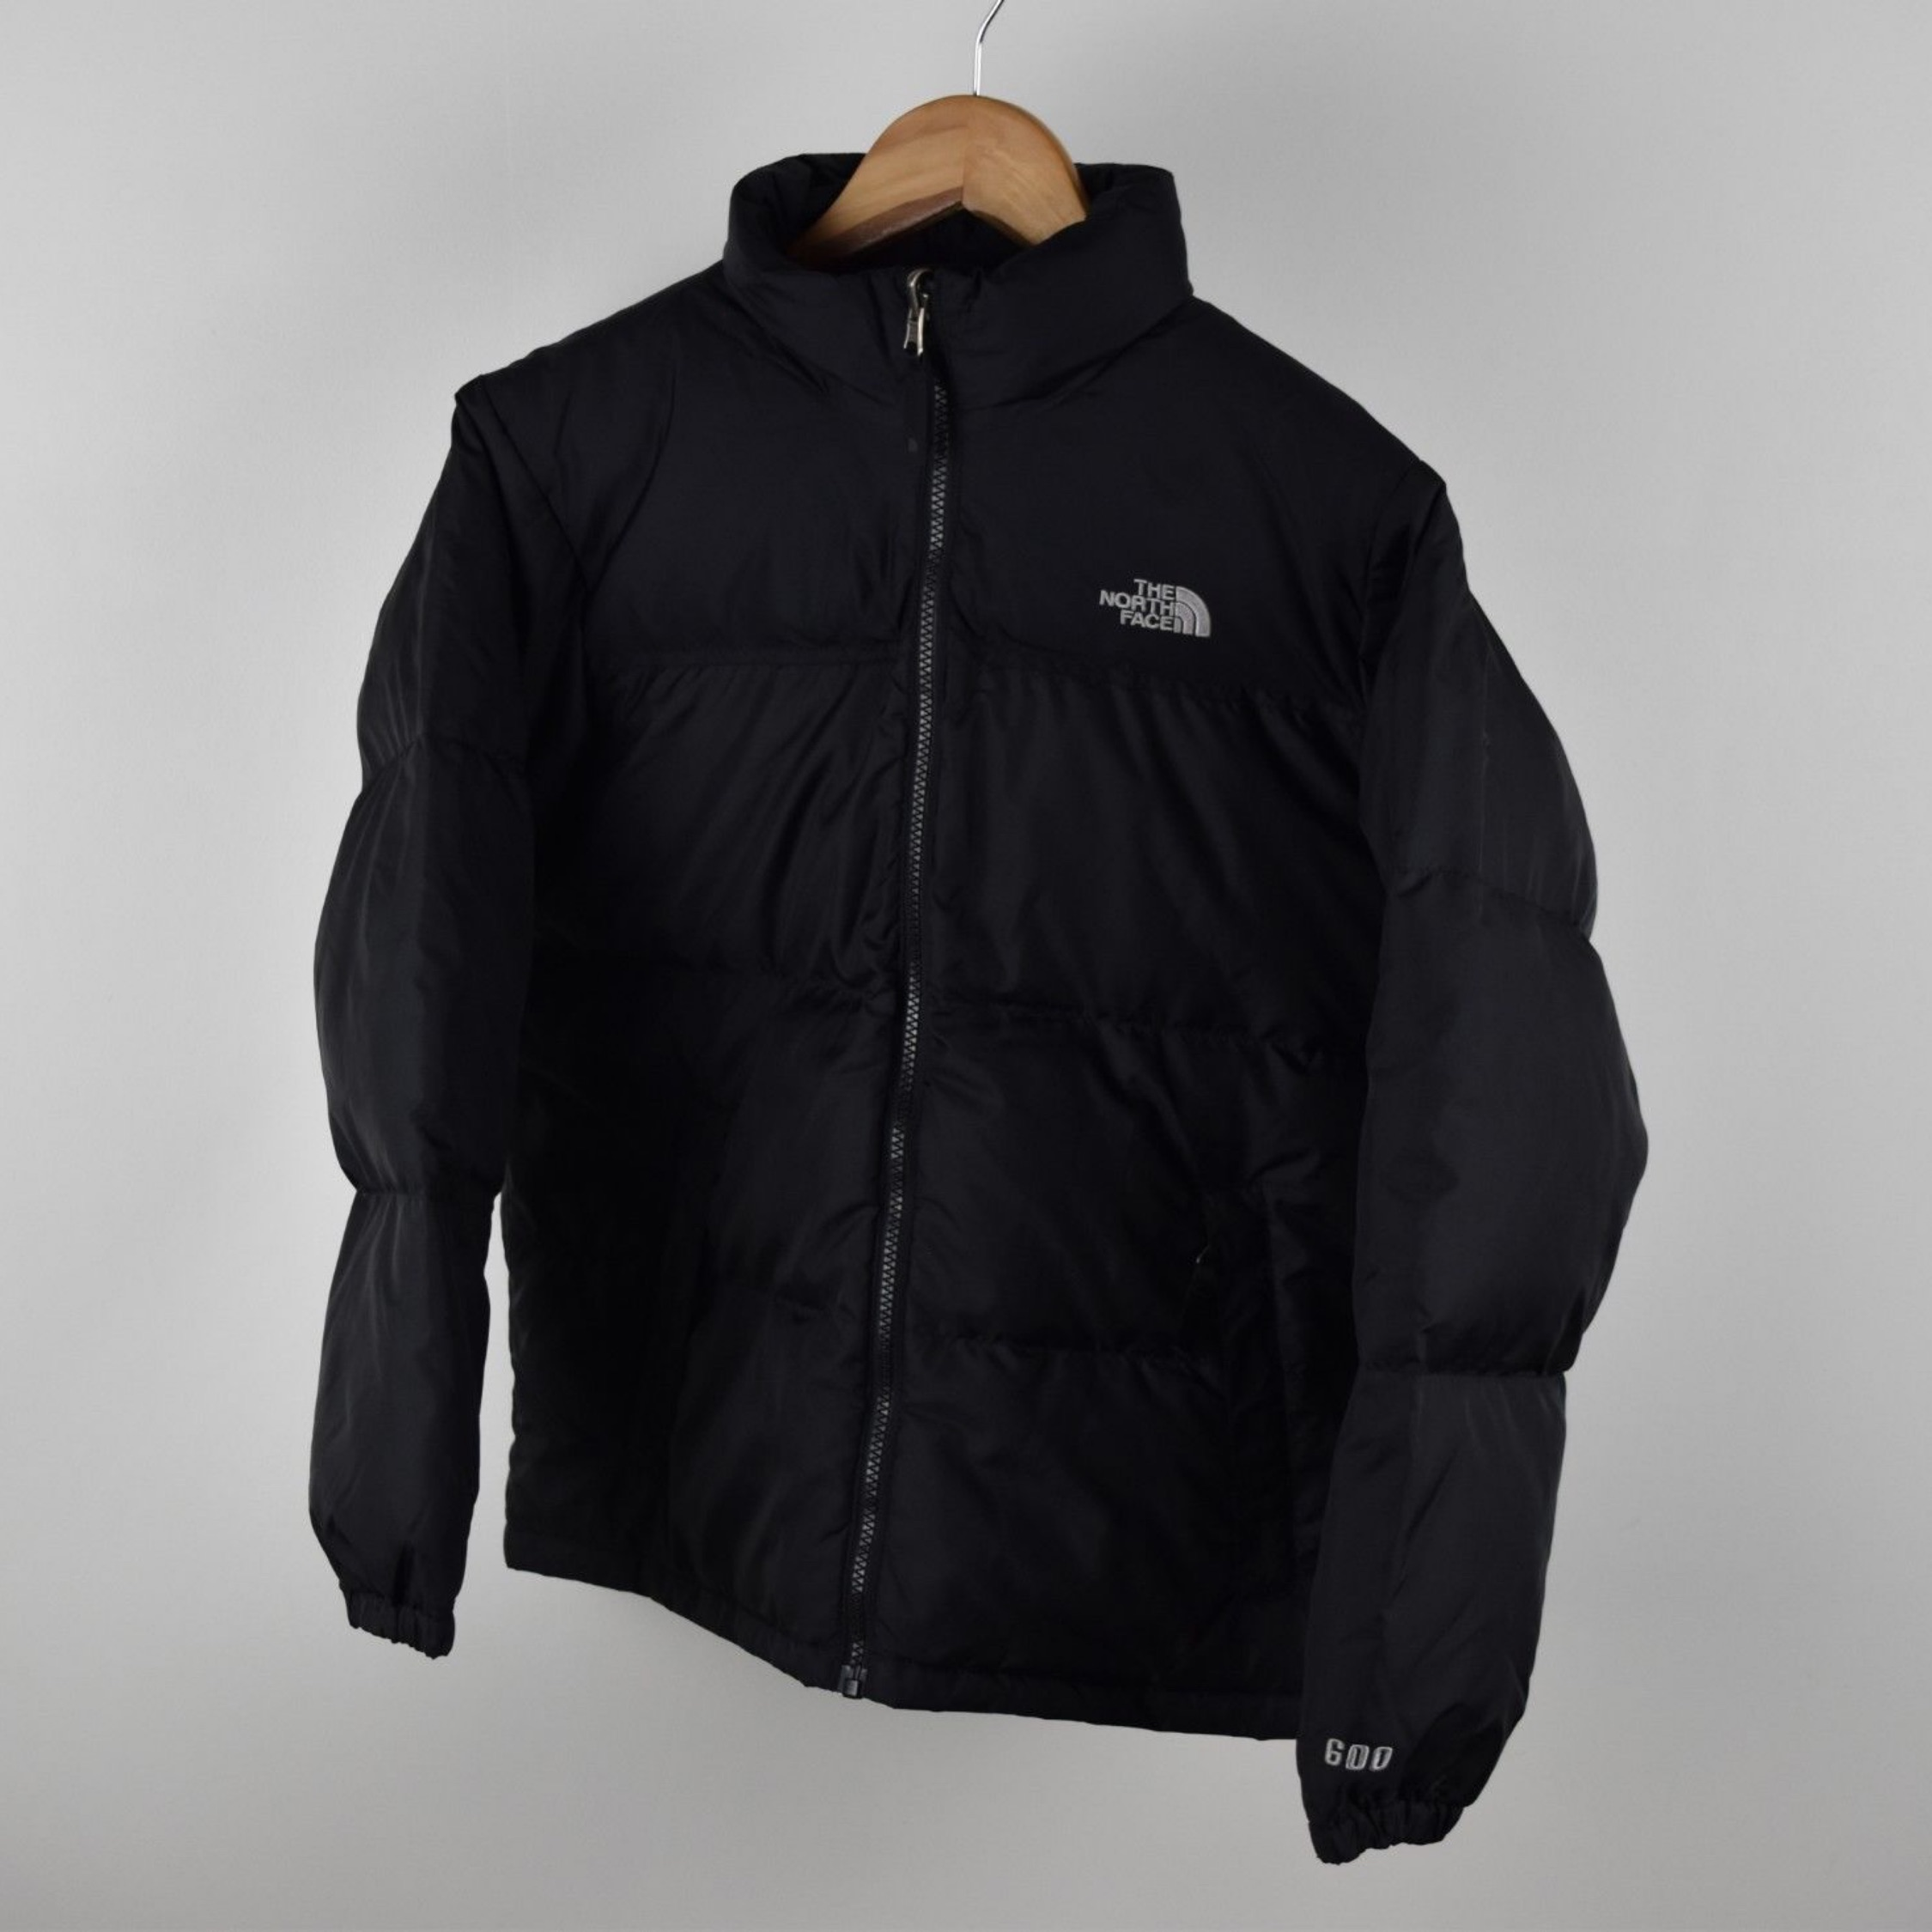 84b1d58fc Boys Black North Face 600 Size Large Down Puffer